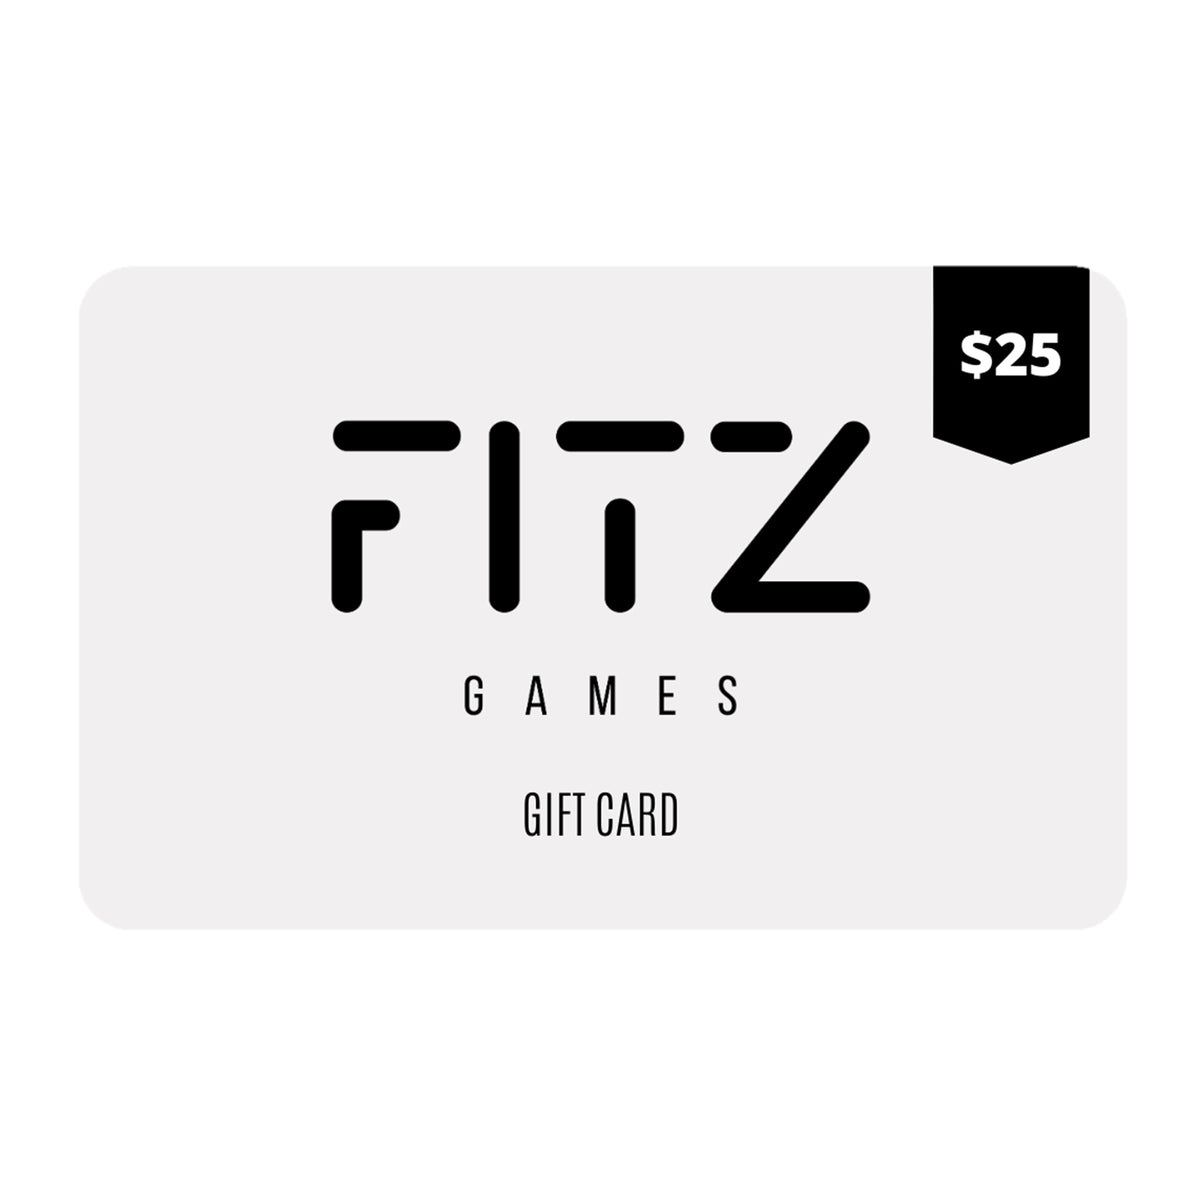 $25 FITZ Games Gift Card